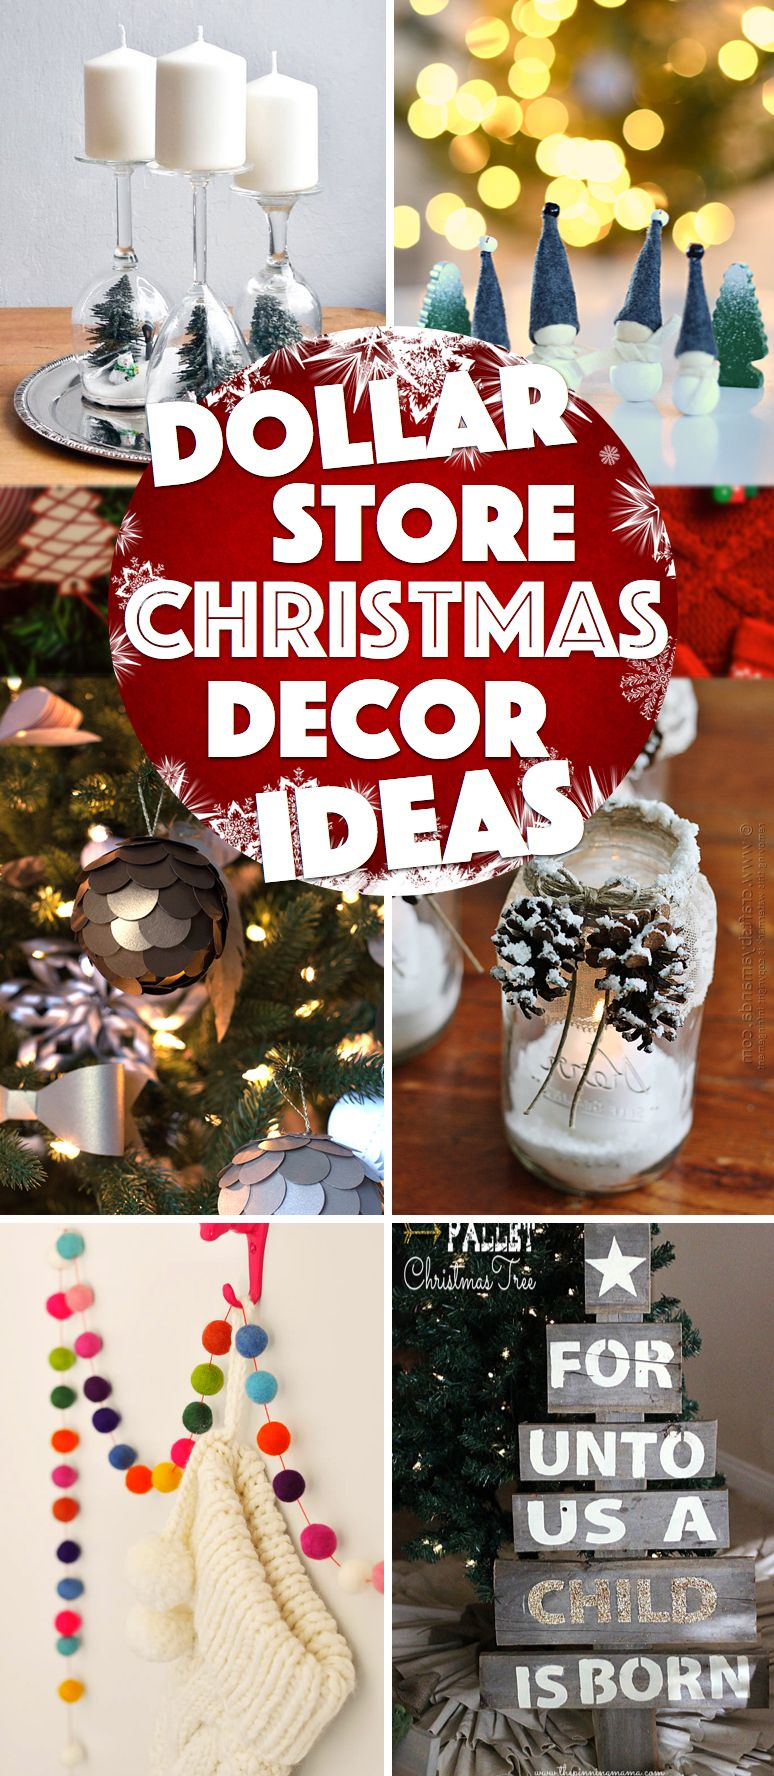 39 oh so gorgeous dollar store diy christmas decor ideas to make you scream with joy - Diy Christmas Decorations Ideas